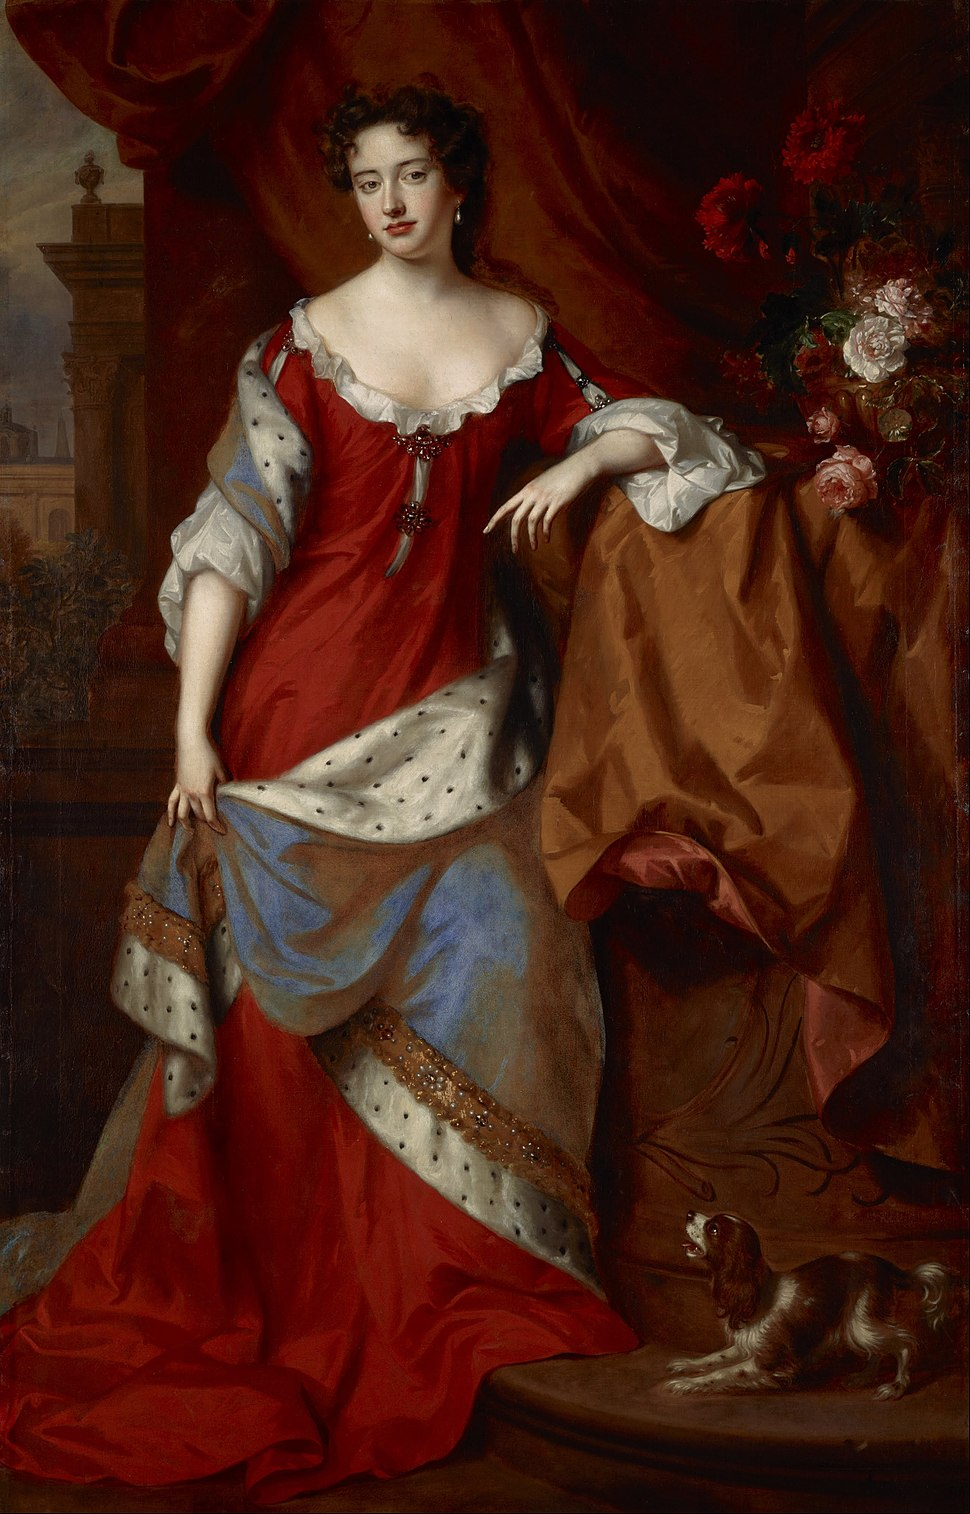 Willem Wissing and Jan van der Vaardt - Queen Anne, when Princess of Denmark, 1665 %E2%80%93 1714 - Google Art Project